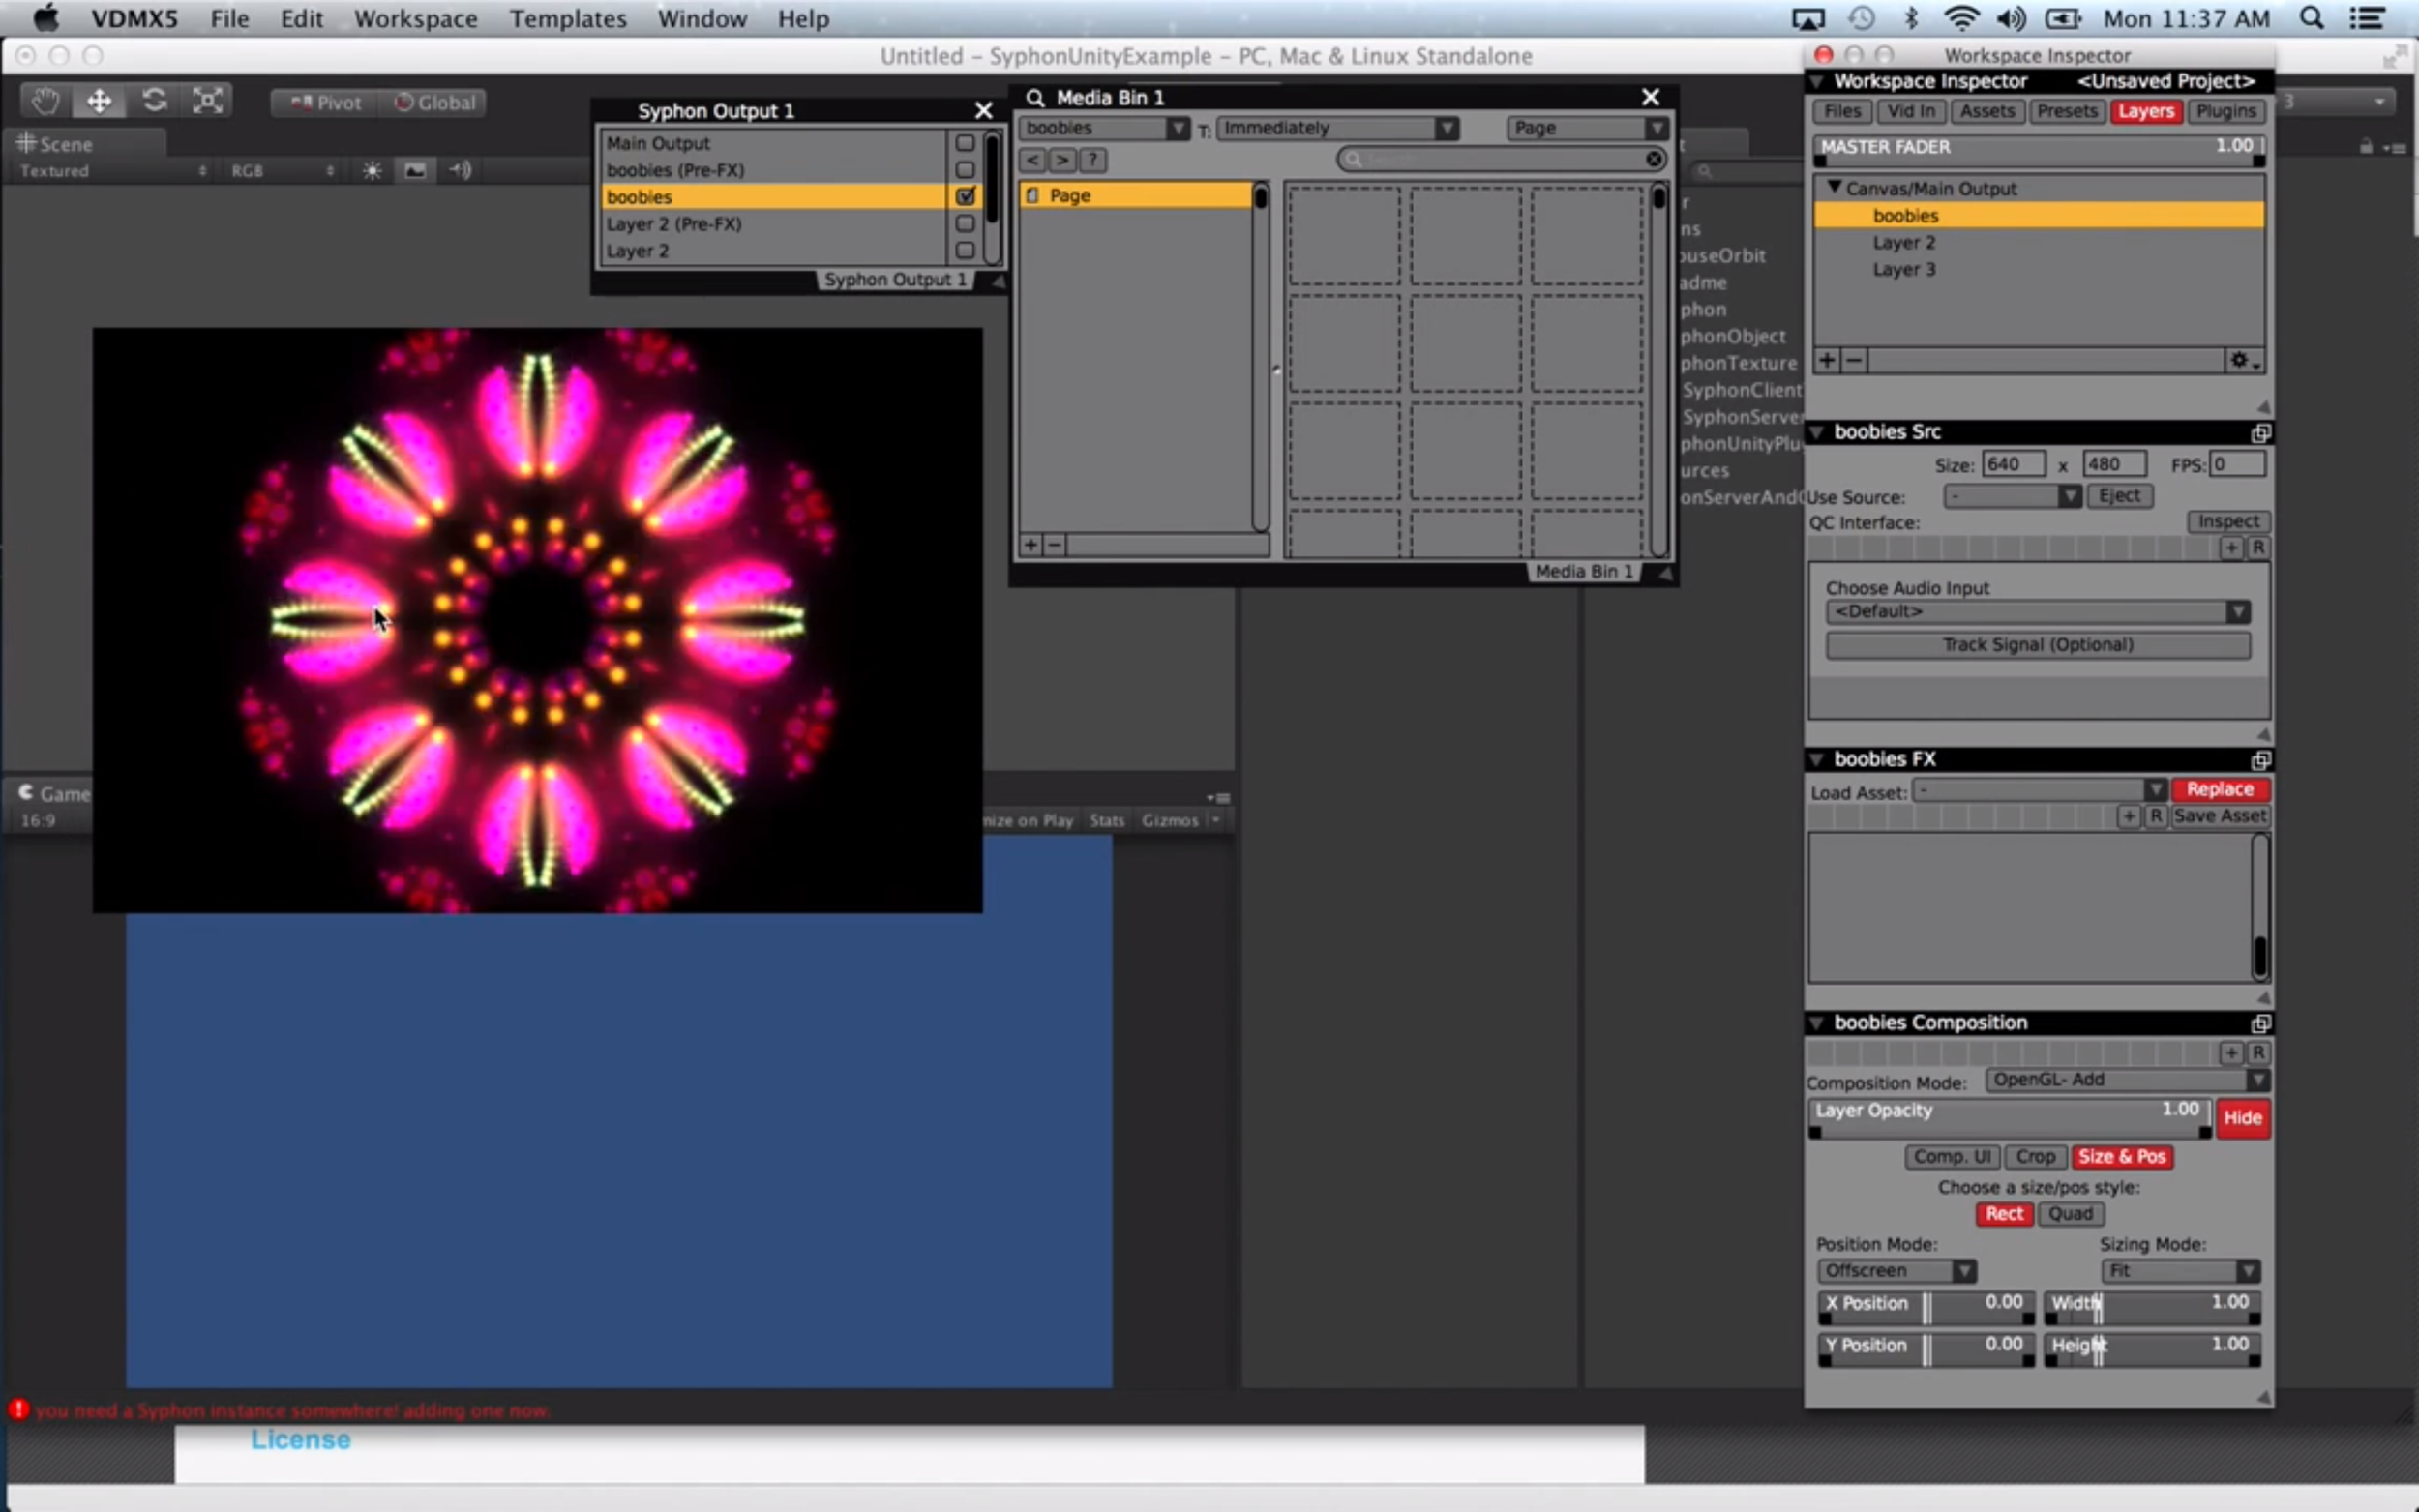 The  Syphon Output plugin  in VDMX publishes video layers to use in other applications.